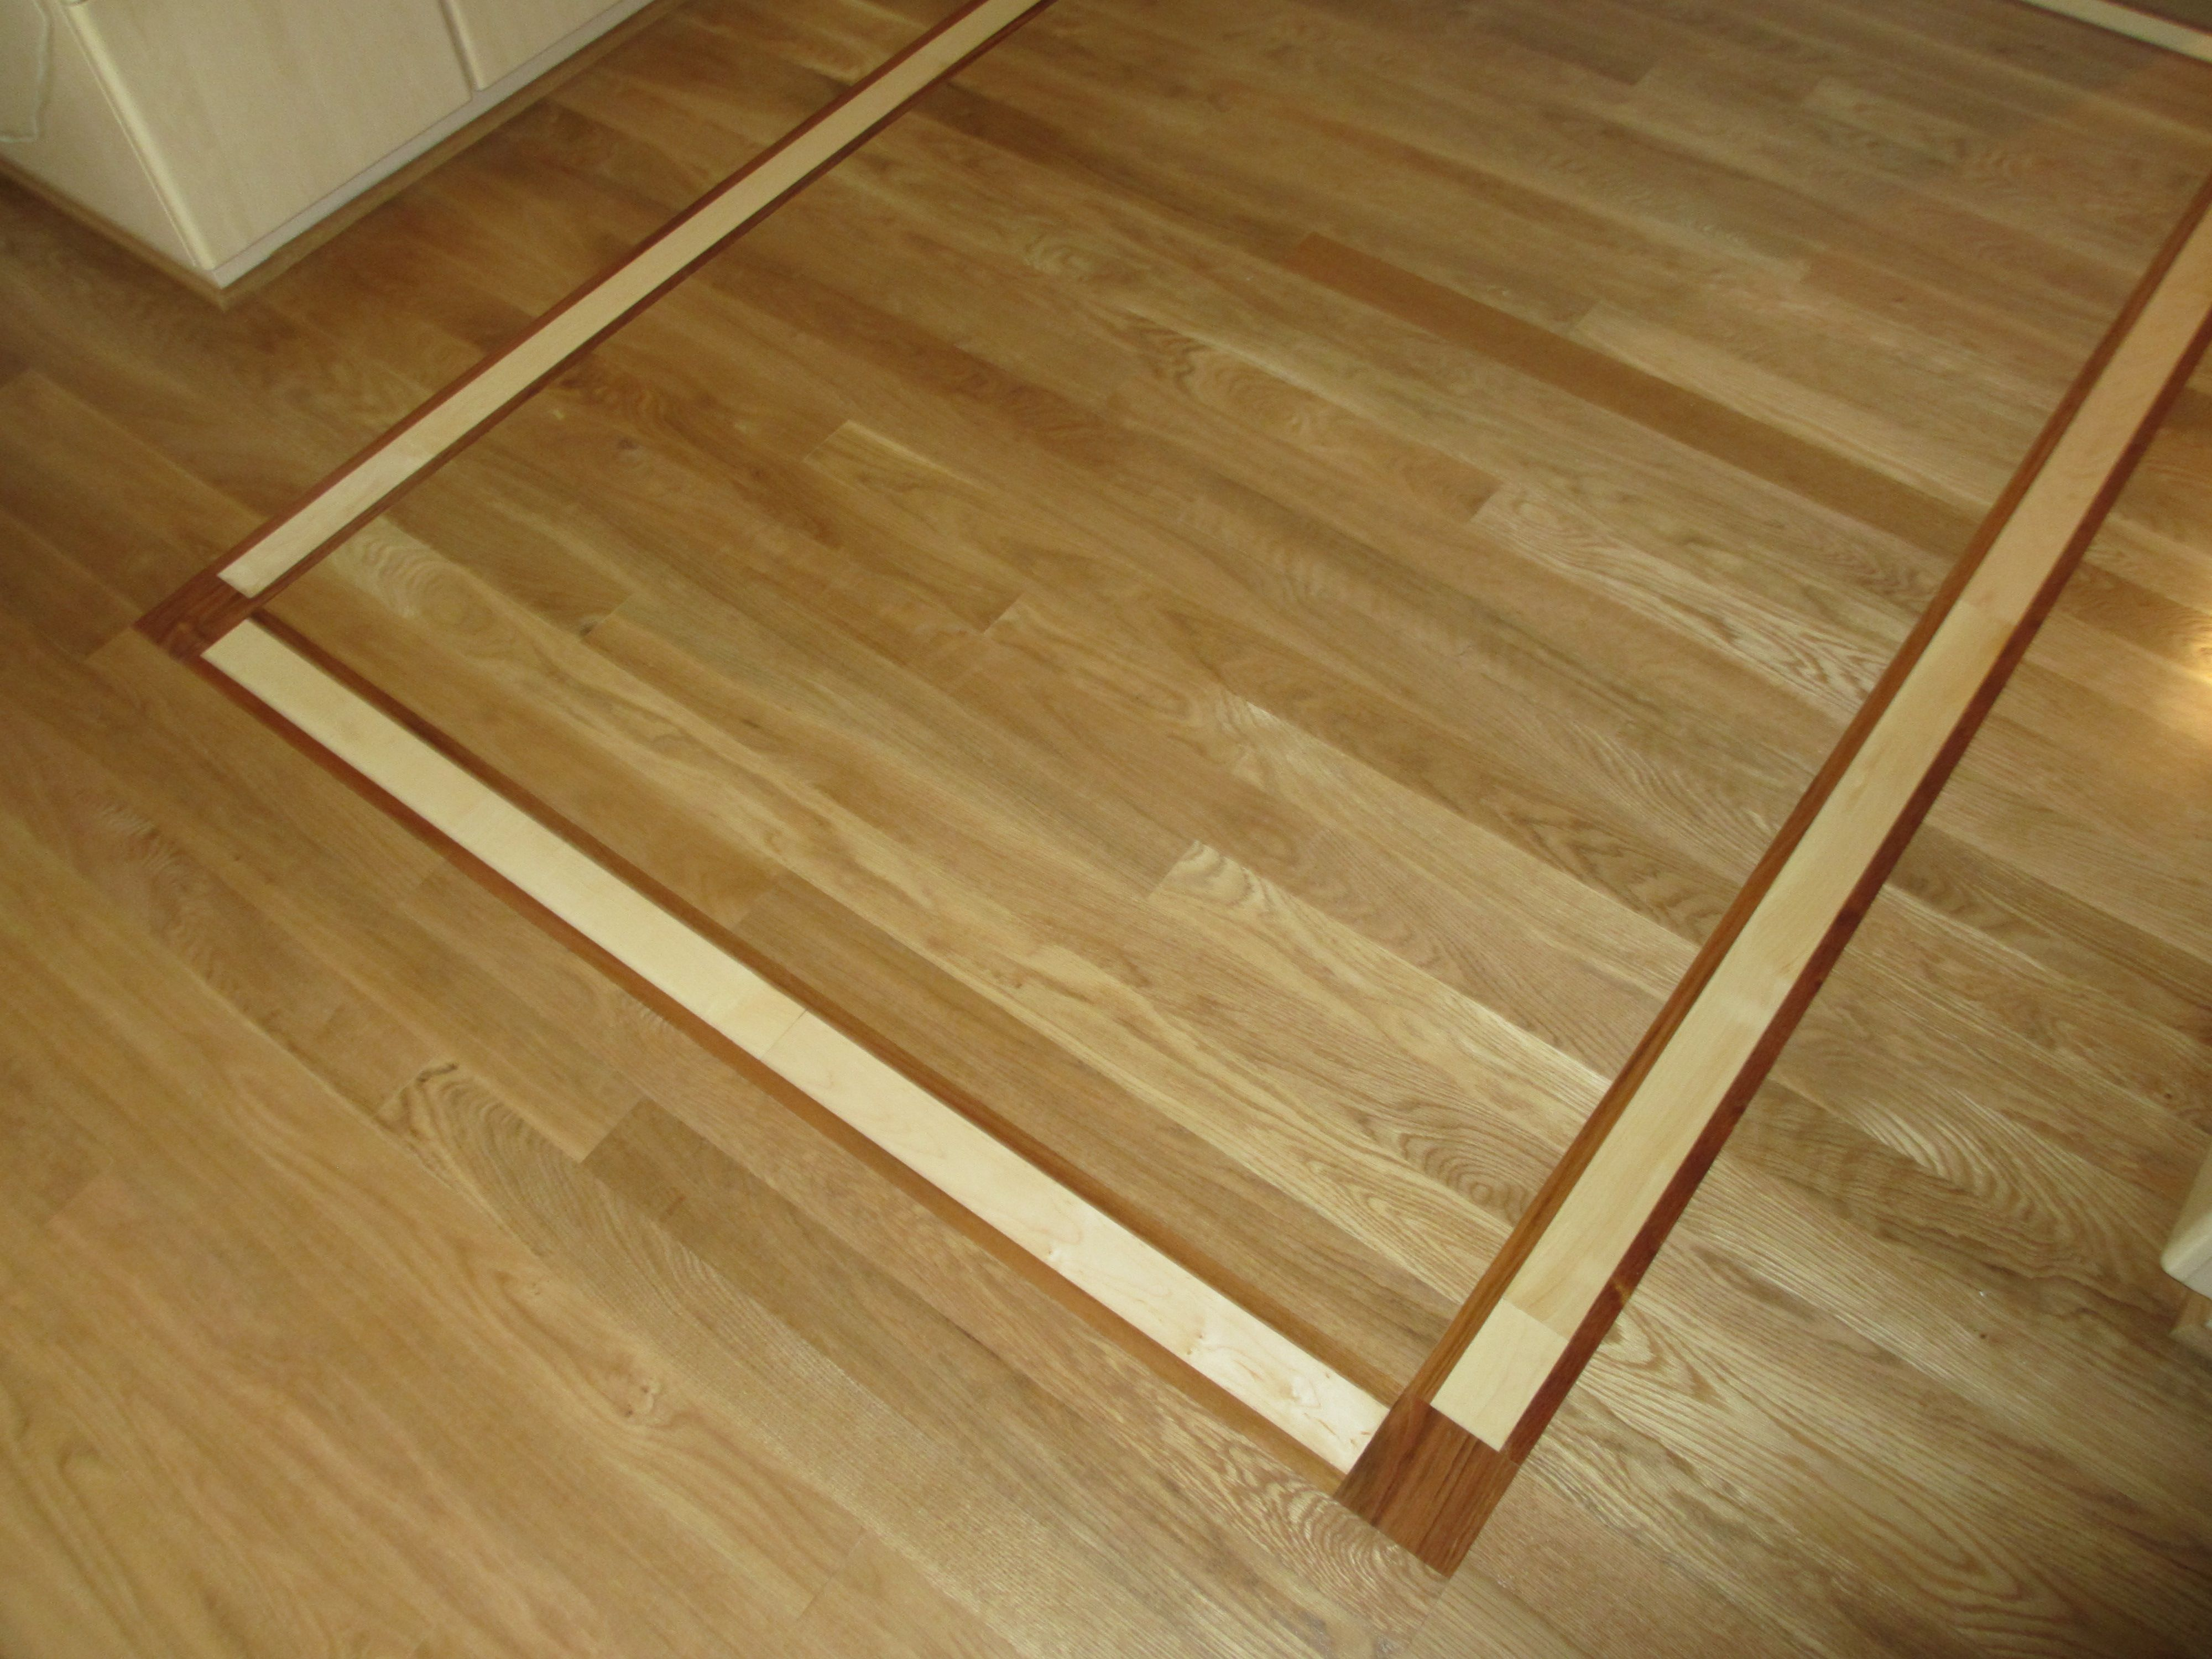 White oak flooring with Brazilian Cherry and Maple inlay